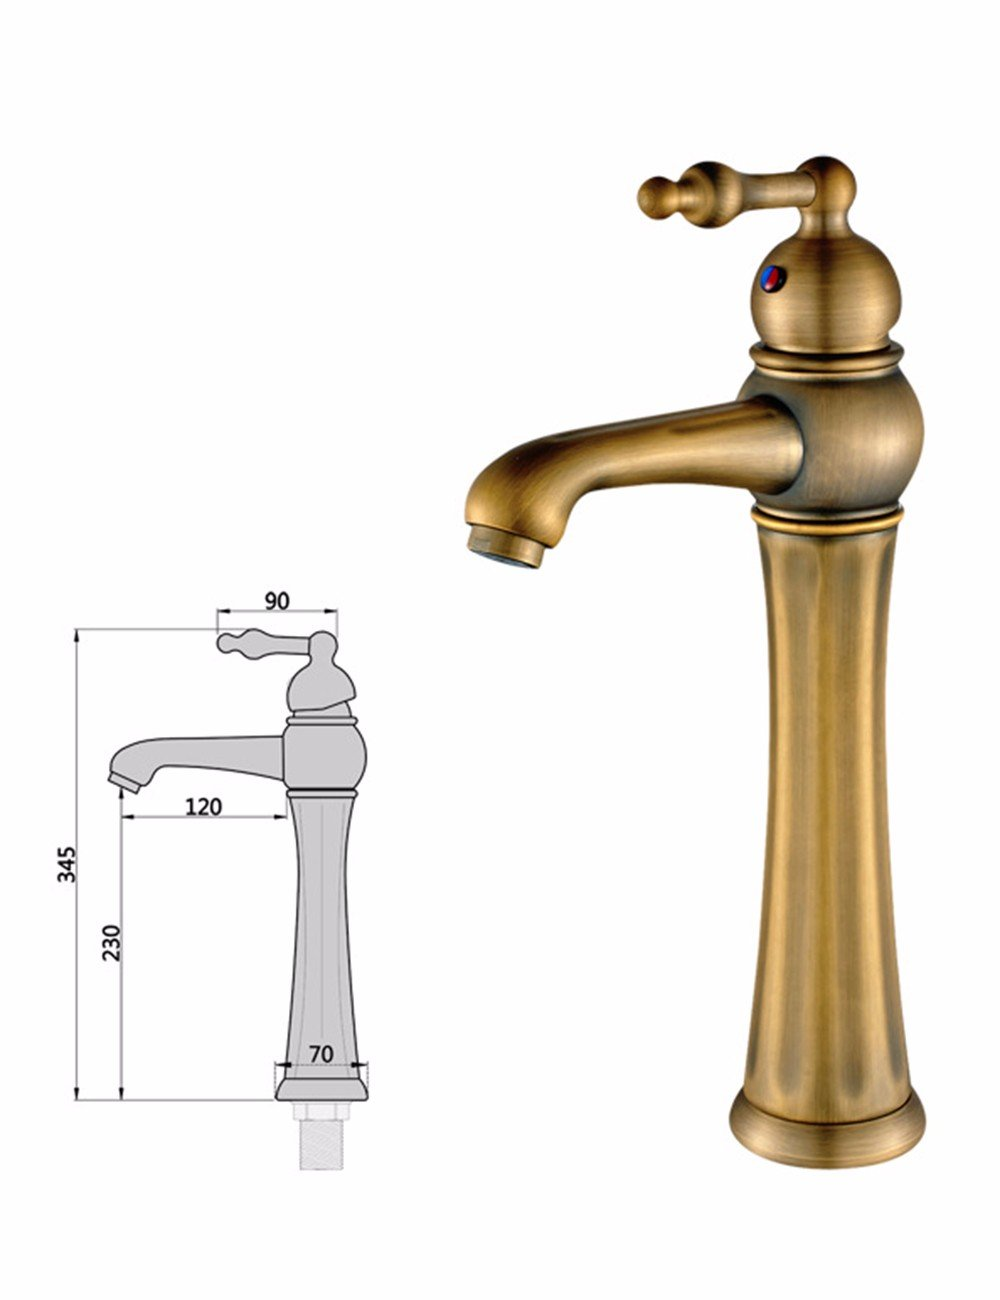 Hlluya Professional Sink Mixer Tap Kitchen Faucet Antique faucet, copper-colord wash hand basins, surface basin, the basin faucet, hot and cold water wash-basin mixer